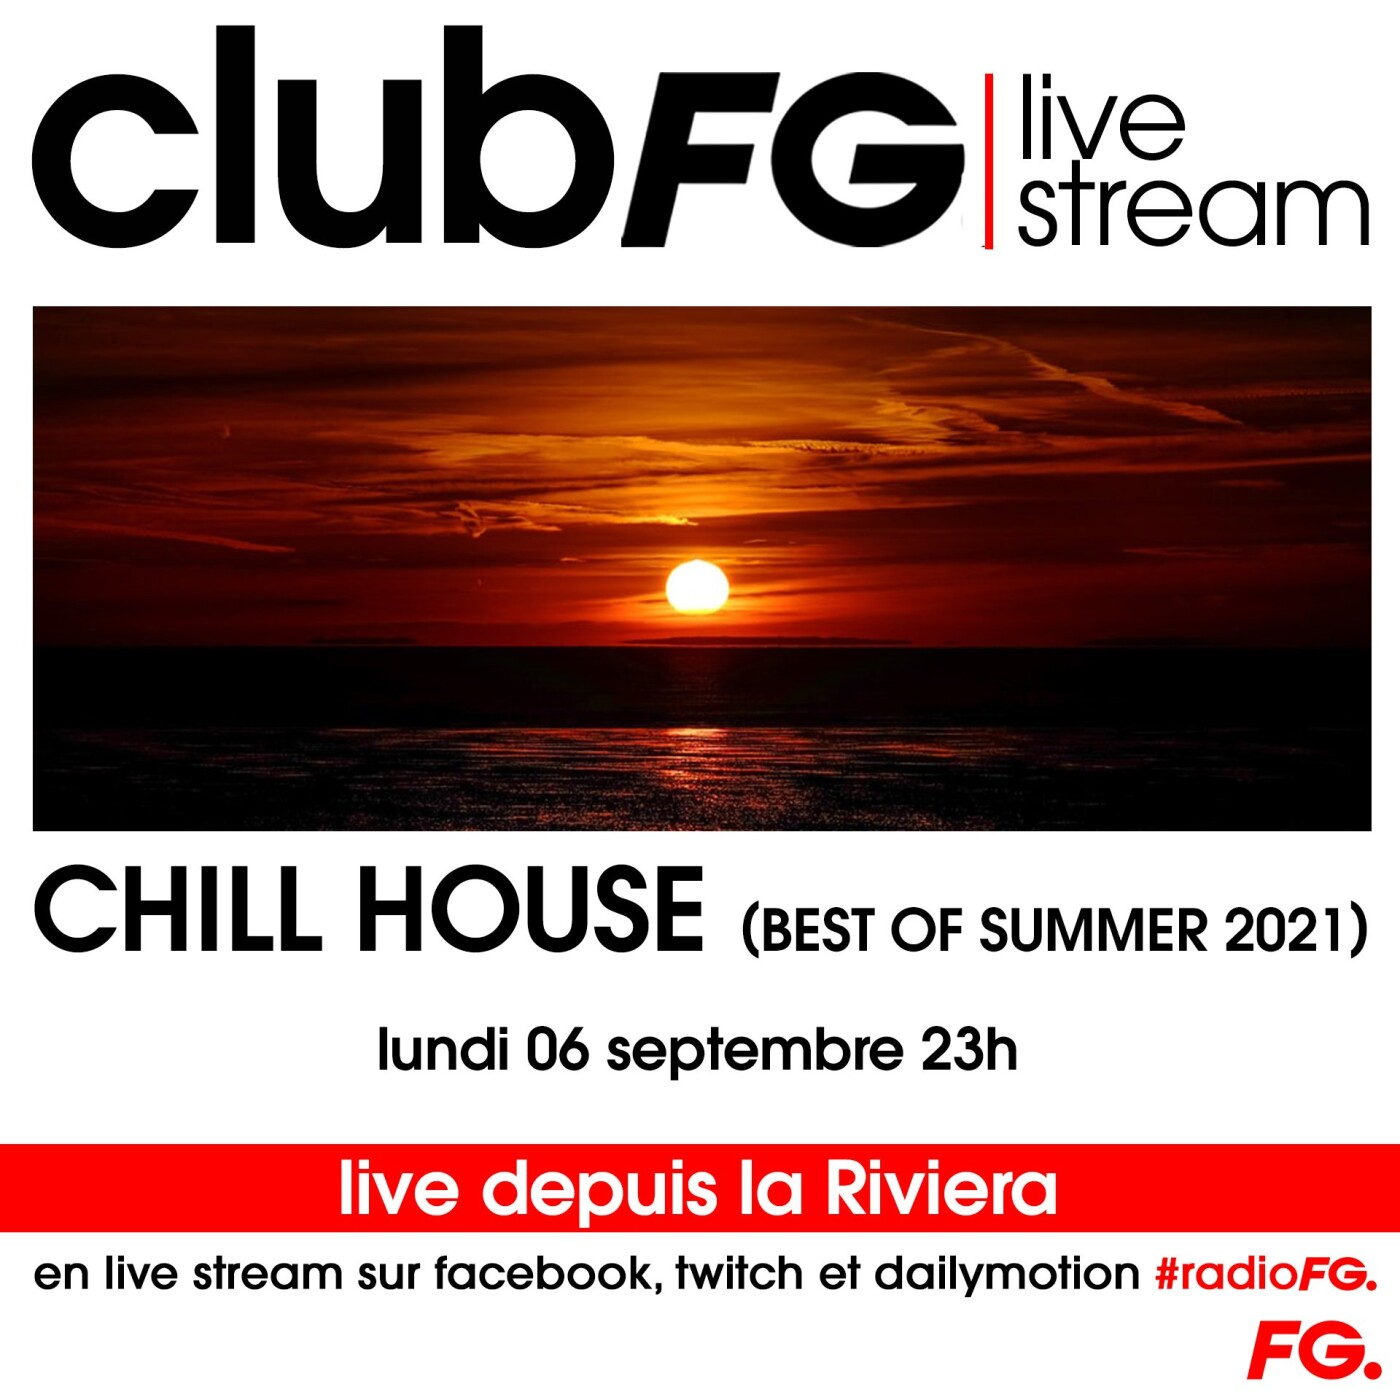 CLUB FG LIVE STREAM : CHILL HOUSE BEST OF SUMMER 2021